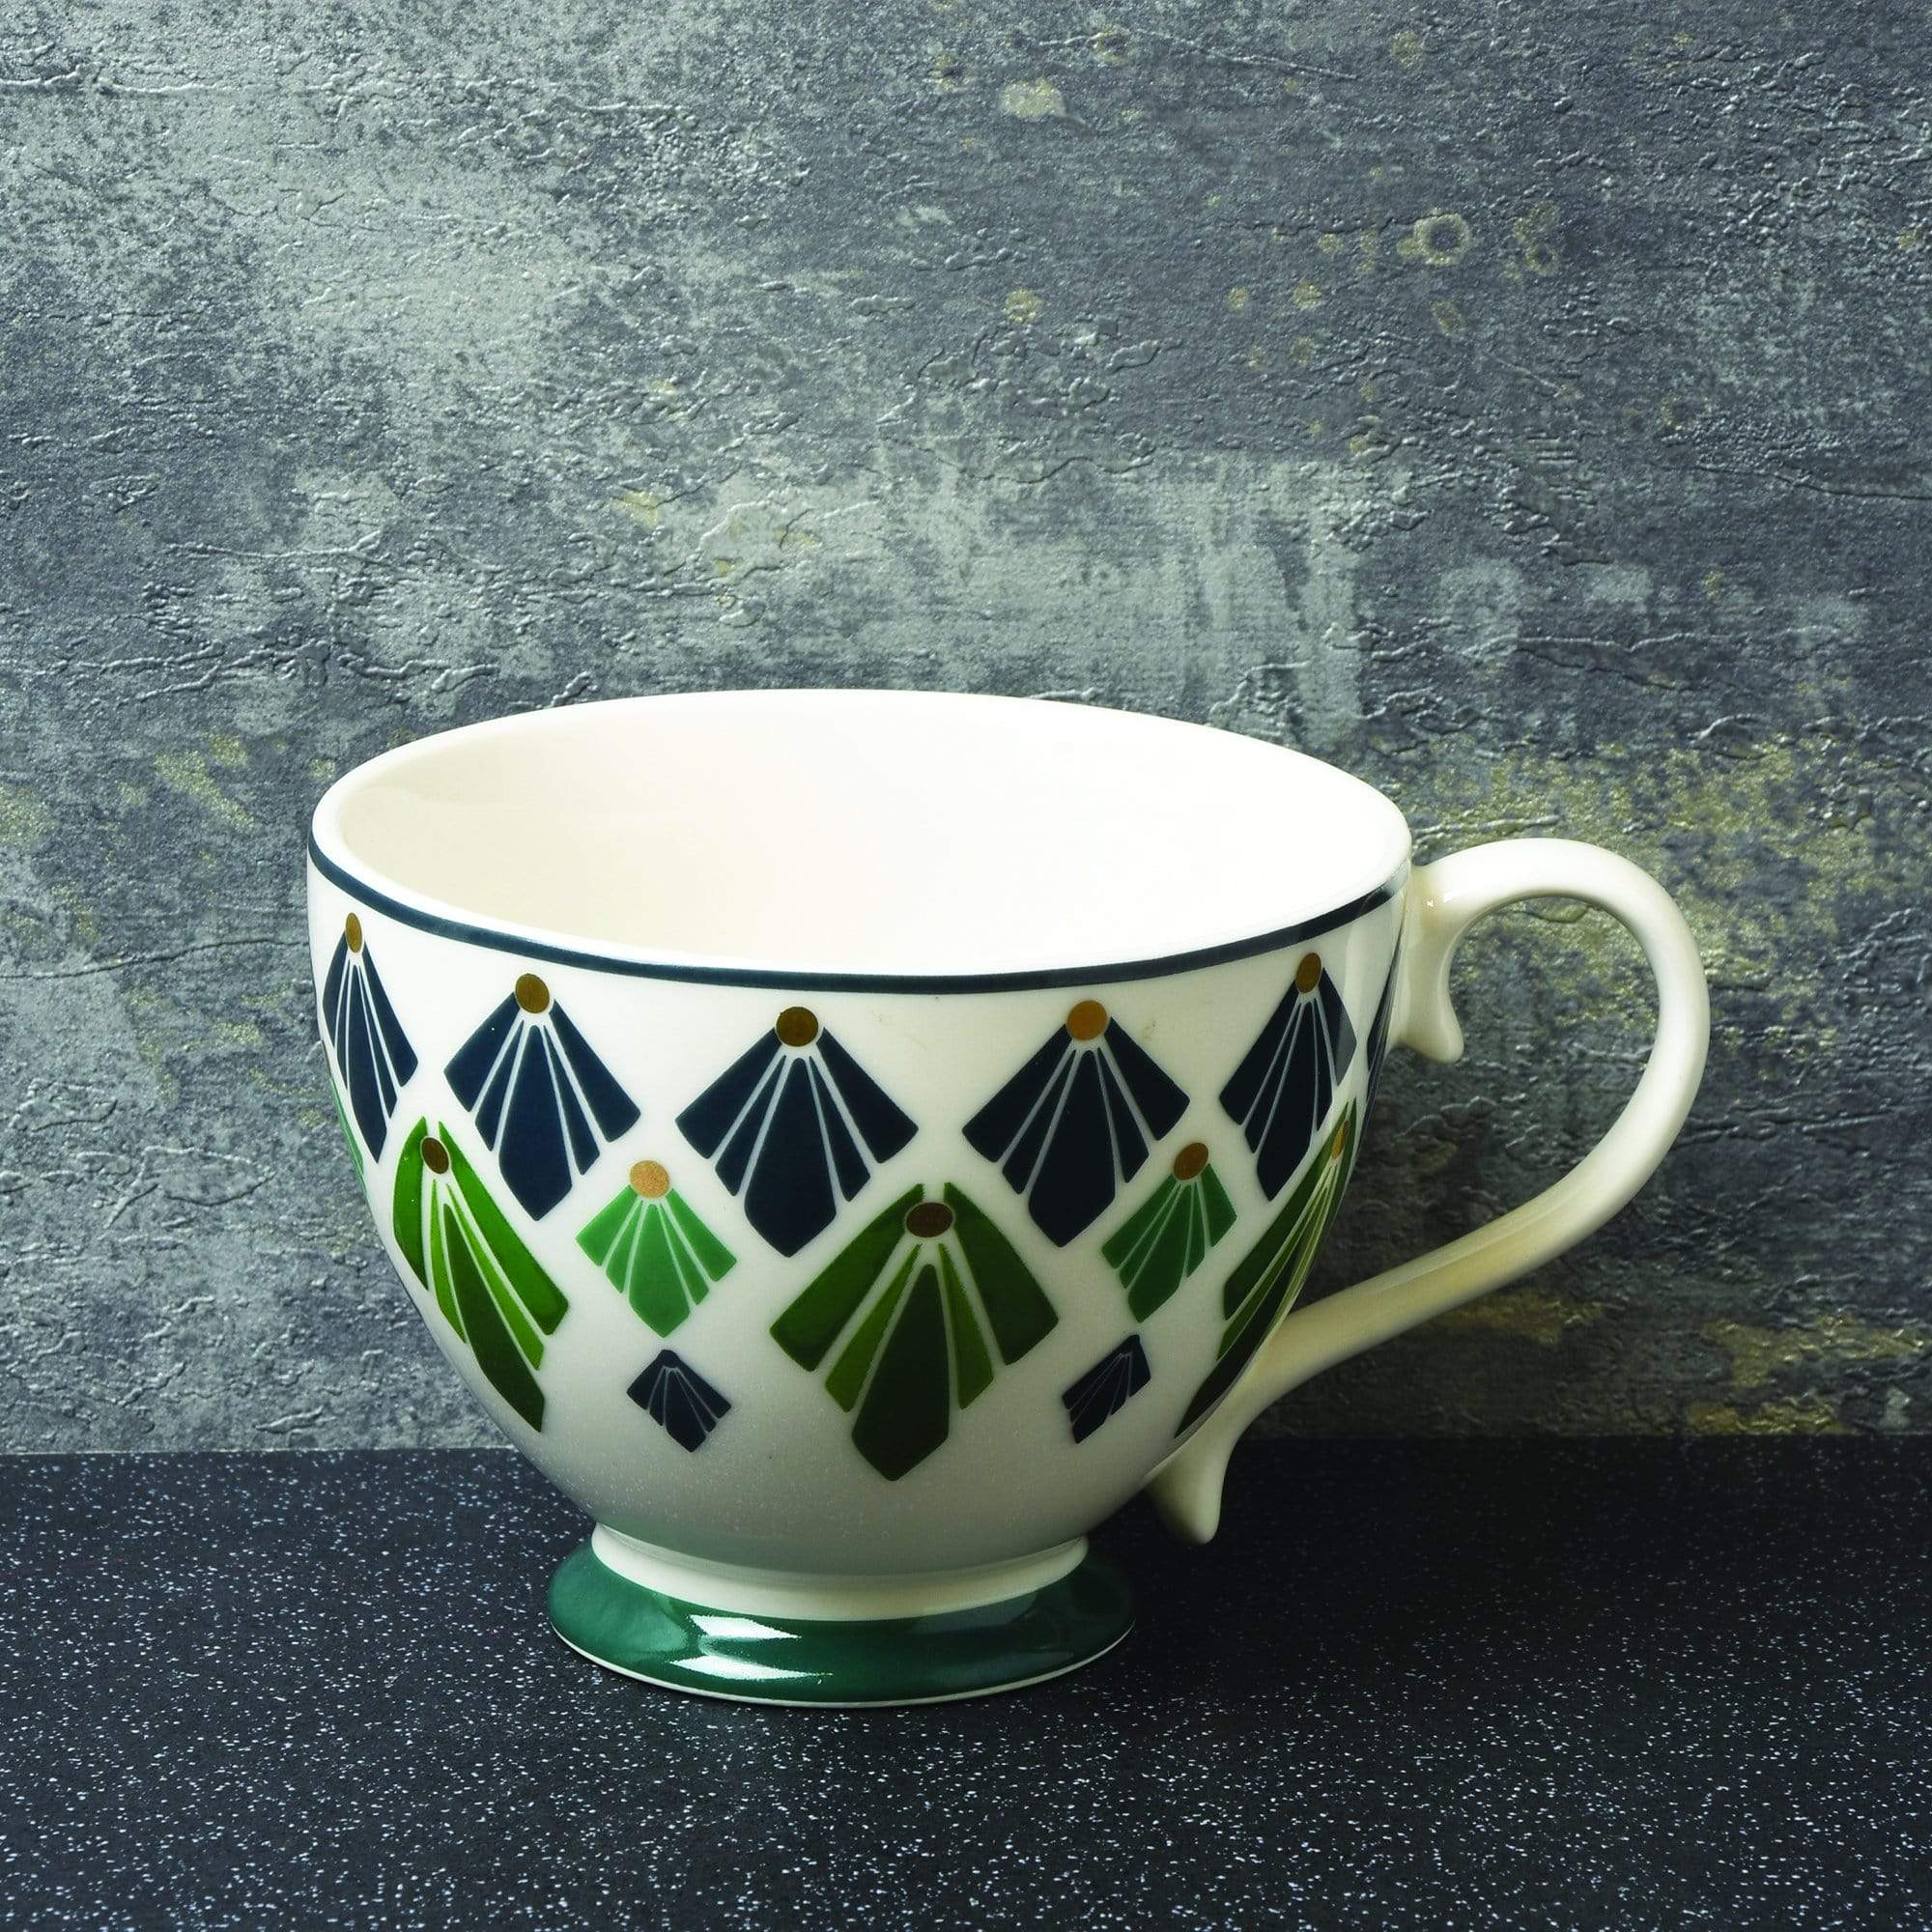 Candlelight Home Mug Footed Mug Emerald Print 6cm 6PK